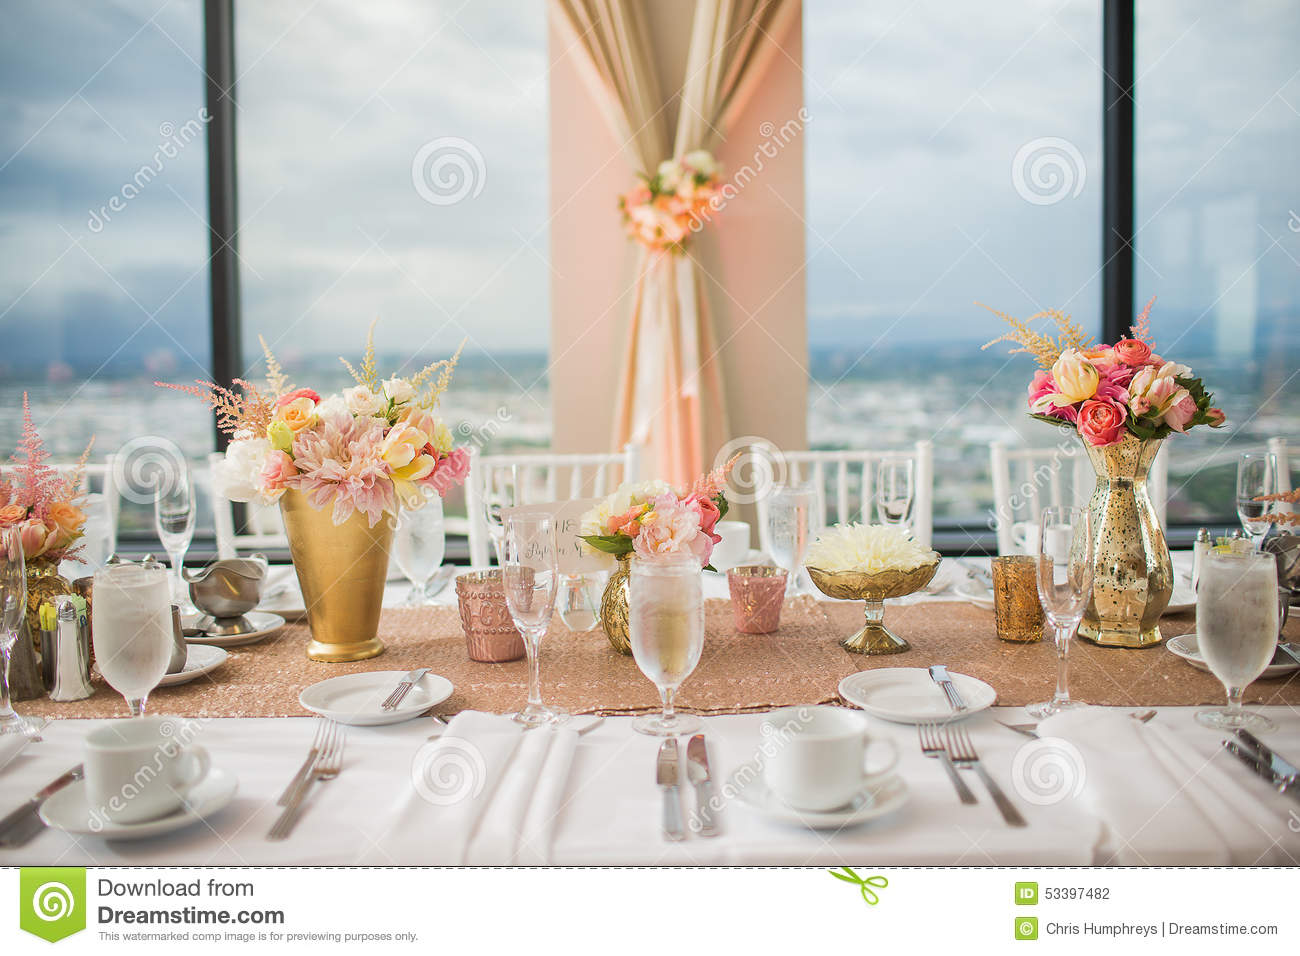 Stock Photo Elegant Wedding Reception Table Decor Centerpieces Hotel Ballroom Image53397482 on banquet chairs for less